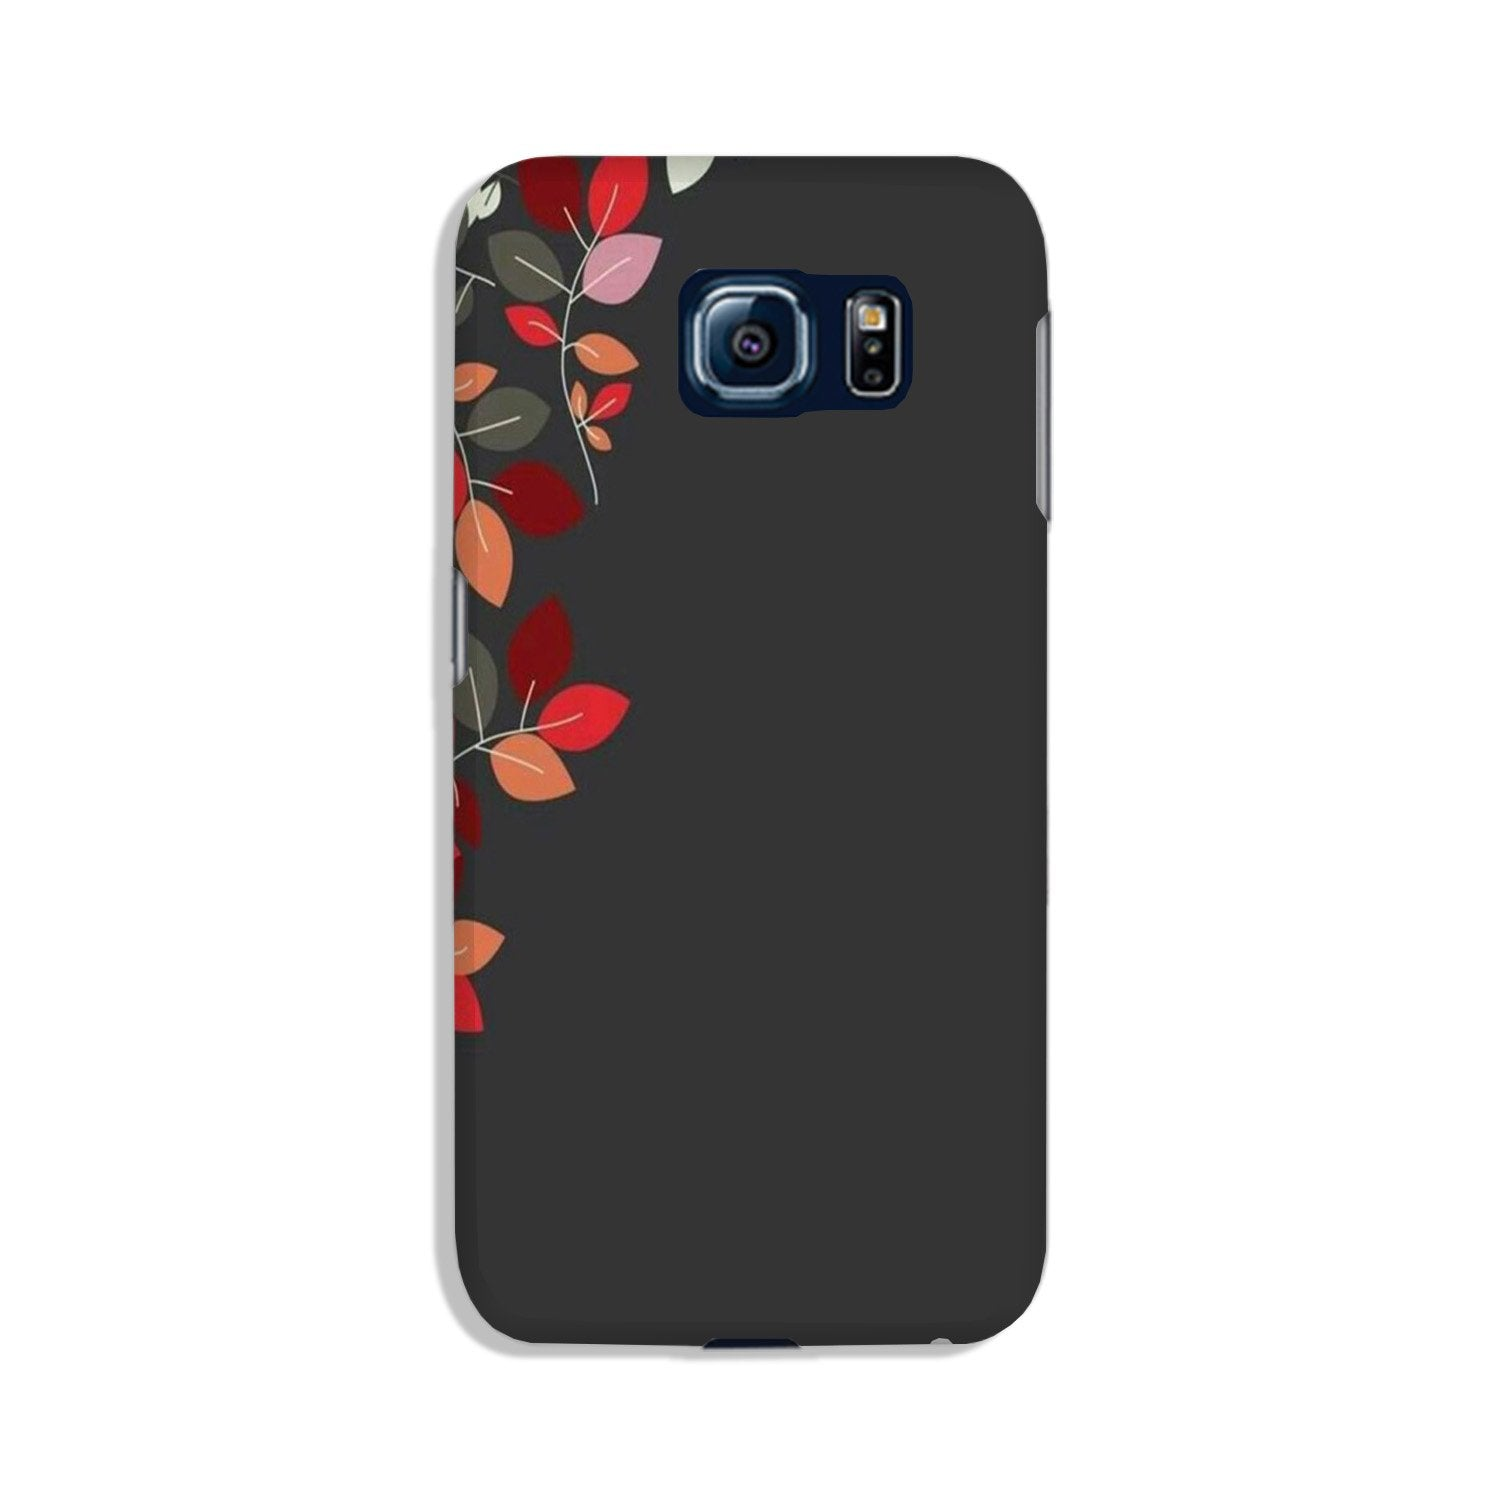 Grey Background Case for Galaxy S6